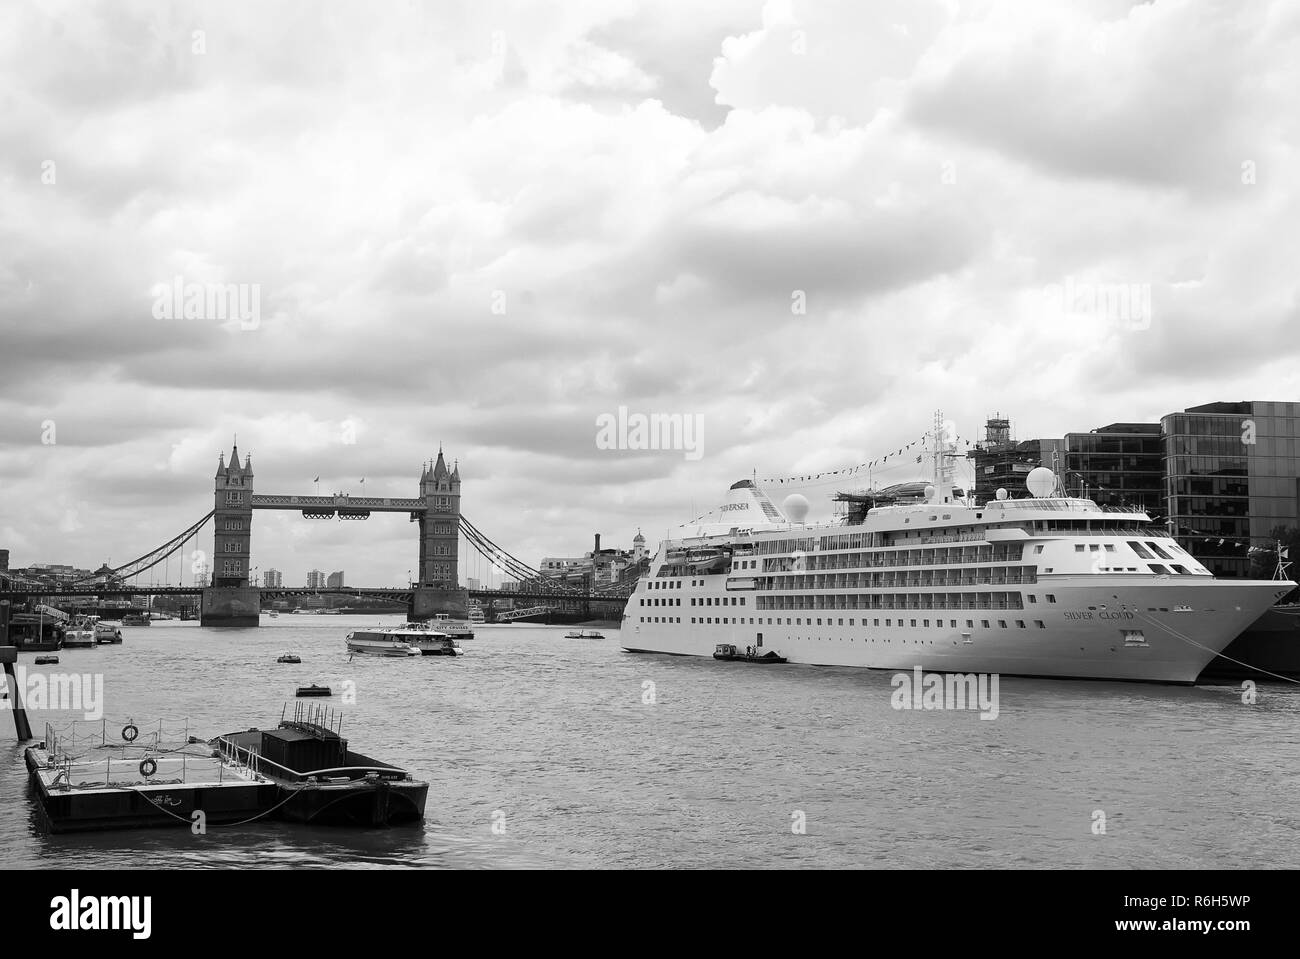 Cruise Ship On River Thames Immagini Cruise Ship On River Thames